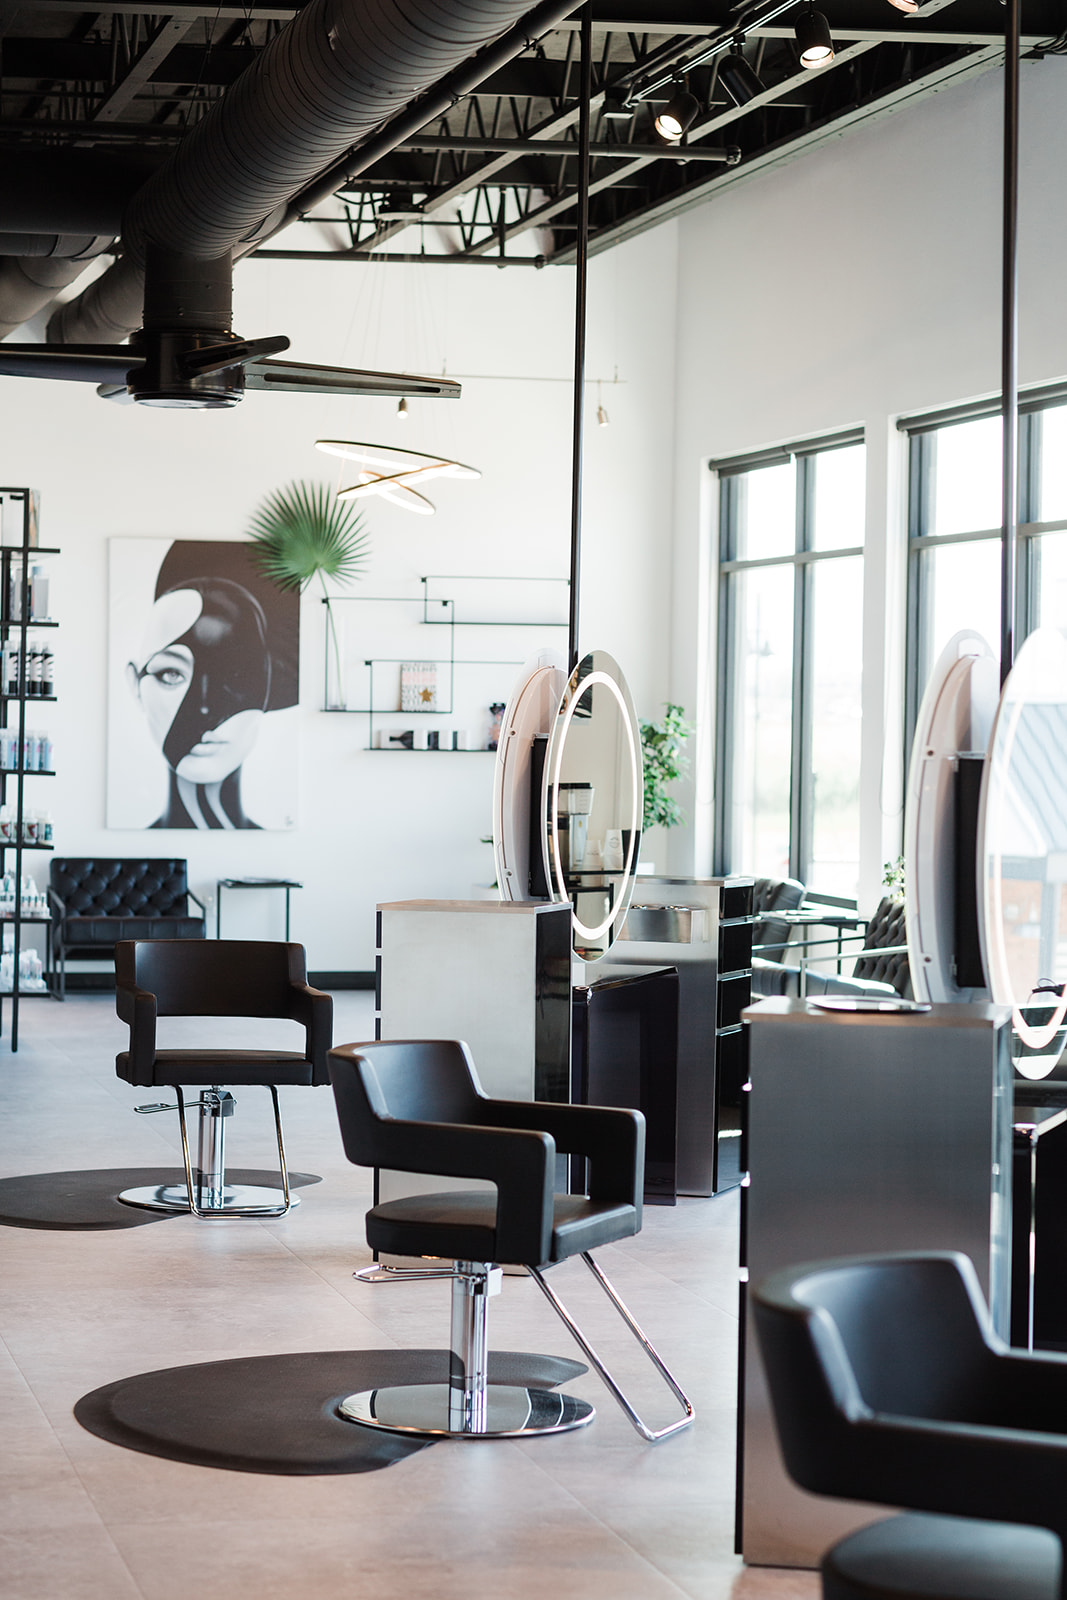 Now hiring stylists in Bozeman, Montana with great compensation!